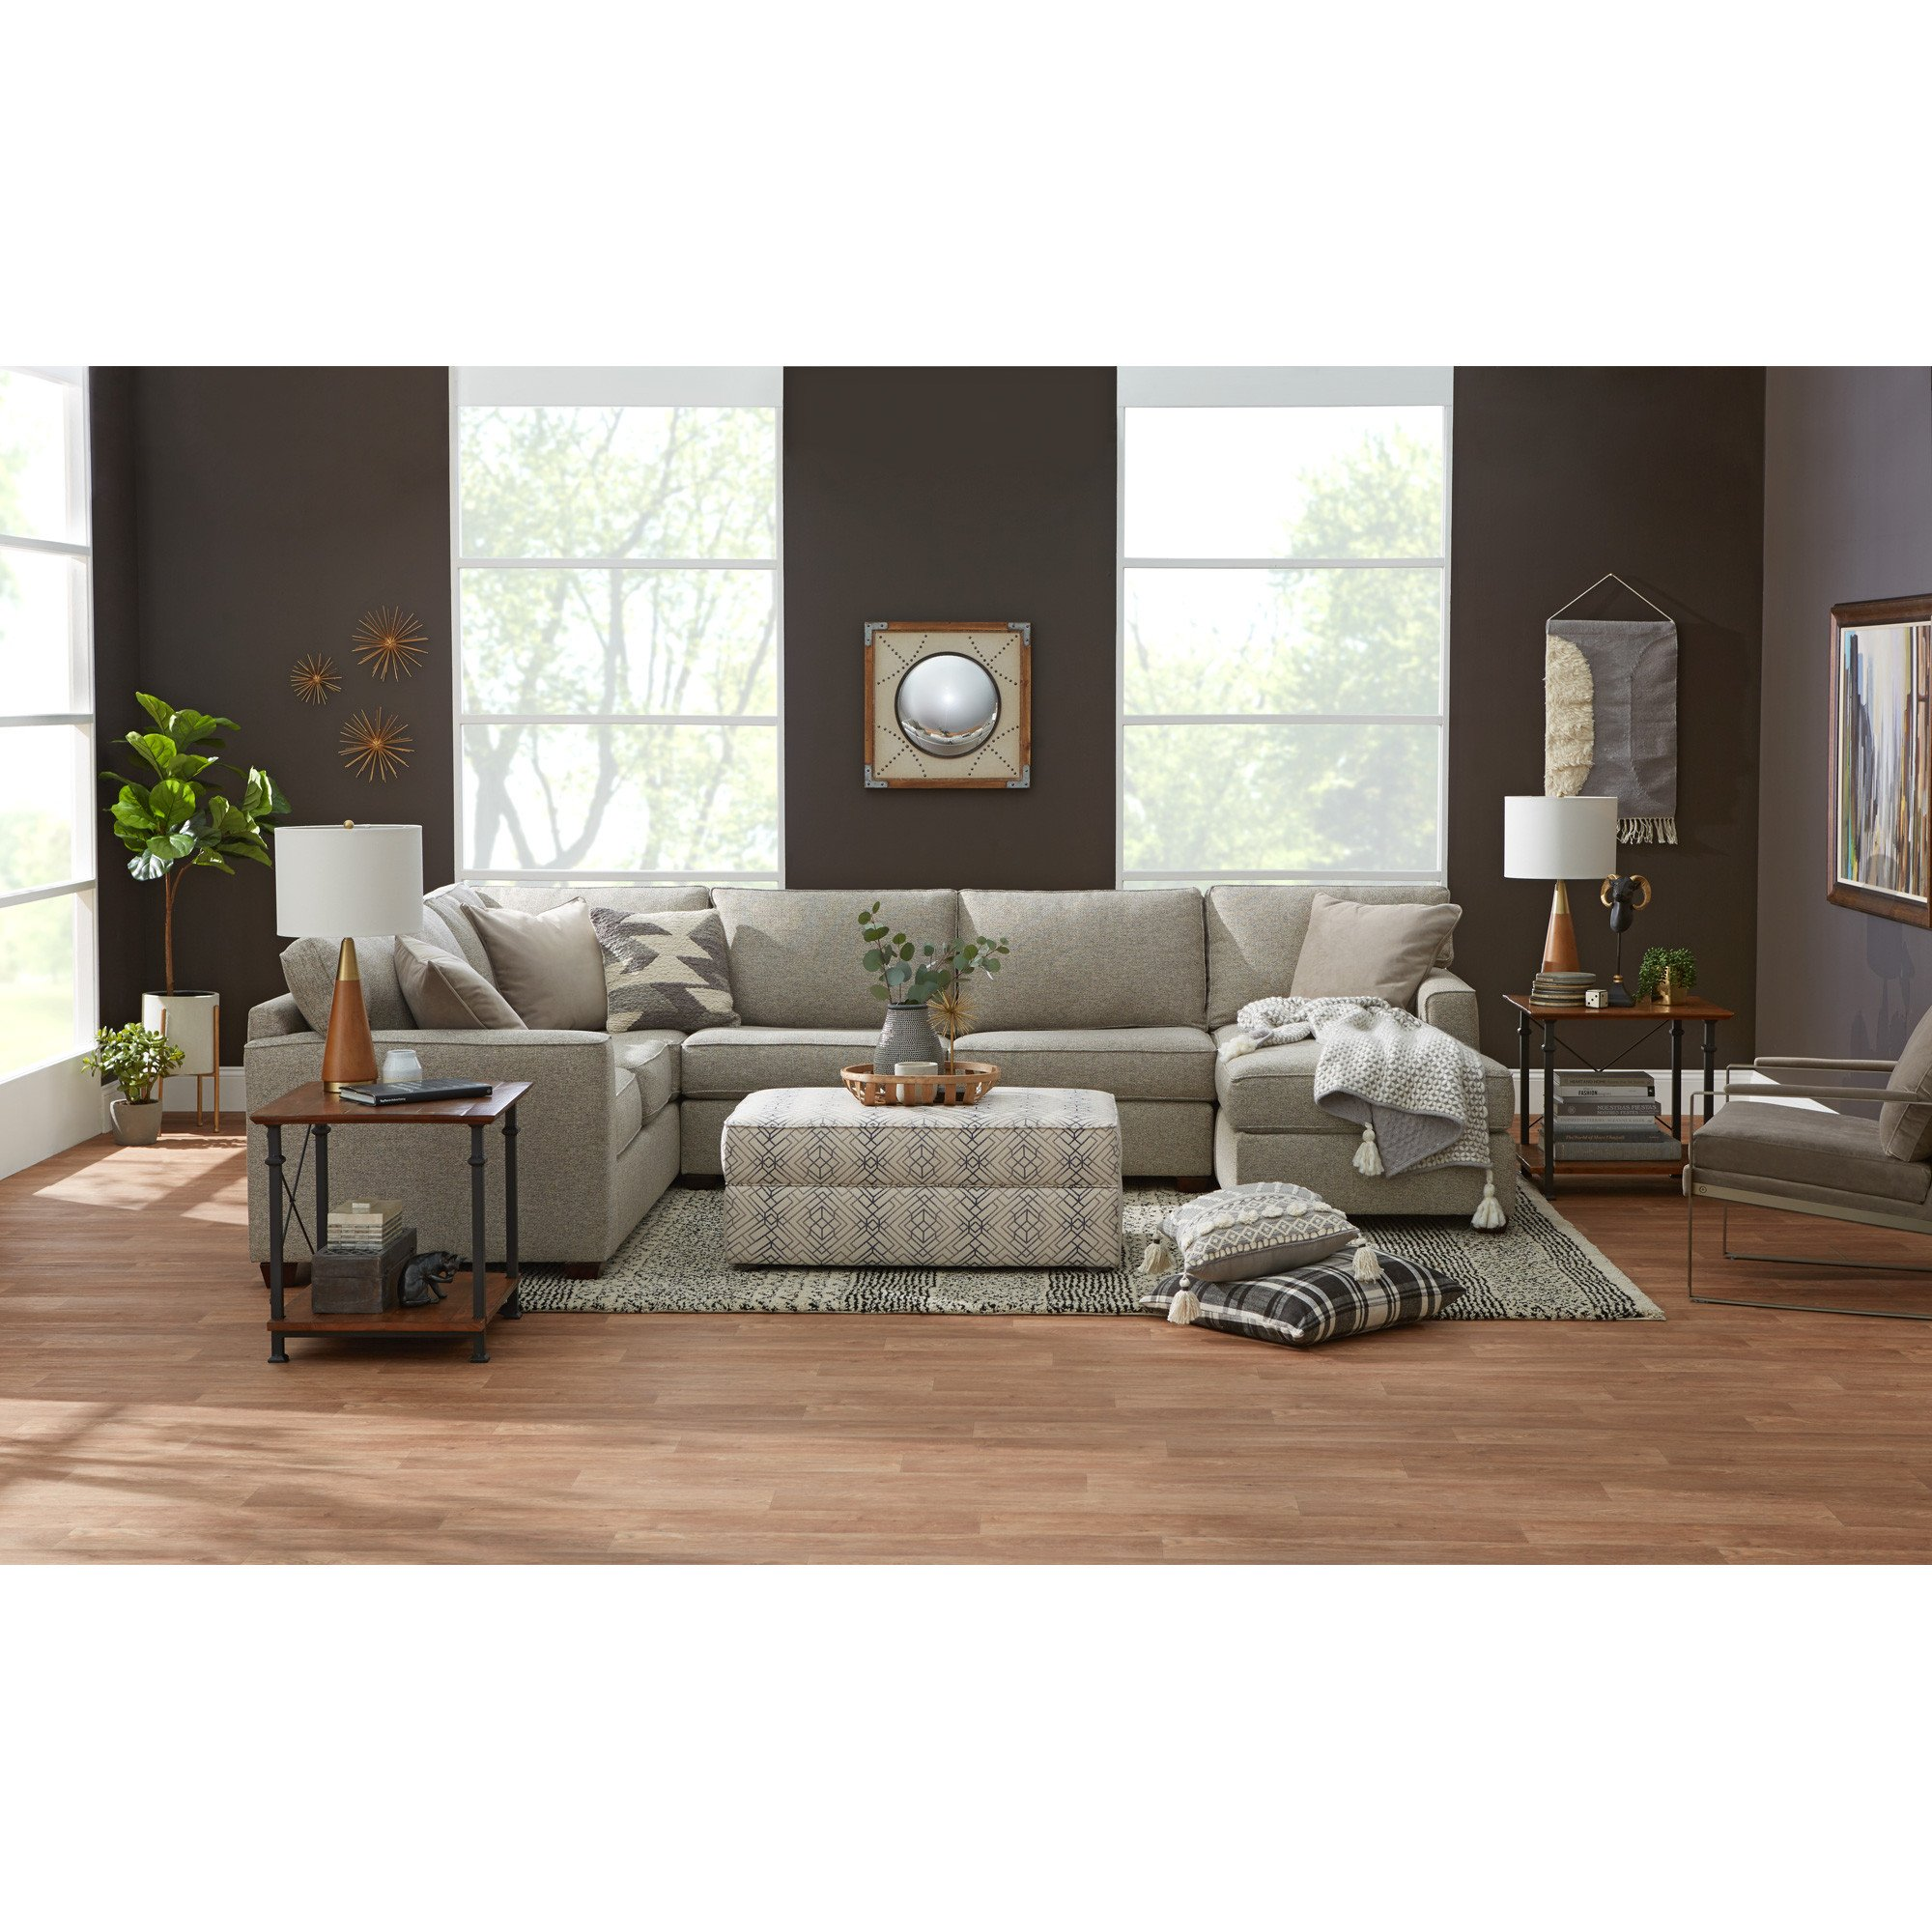 3 Piece Bedroom Furniture Set New Rise 3 Piece Right Sectional Living Rooms